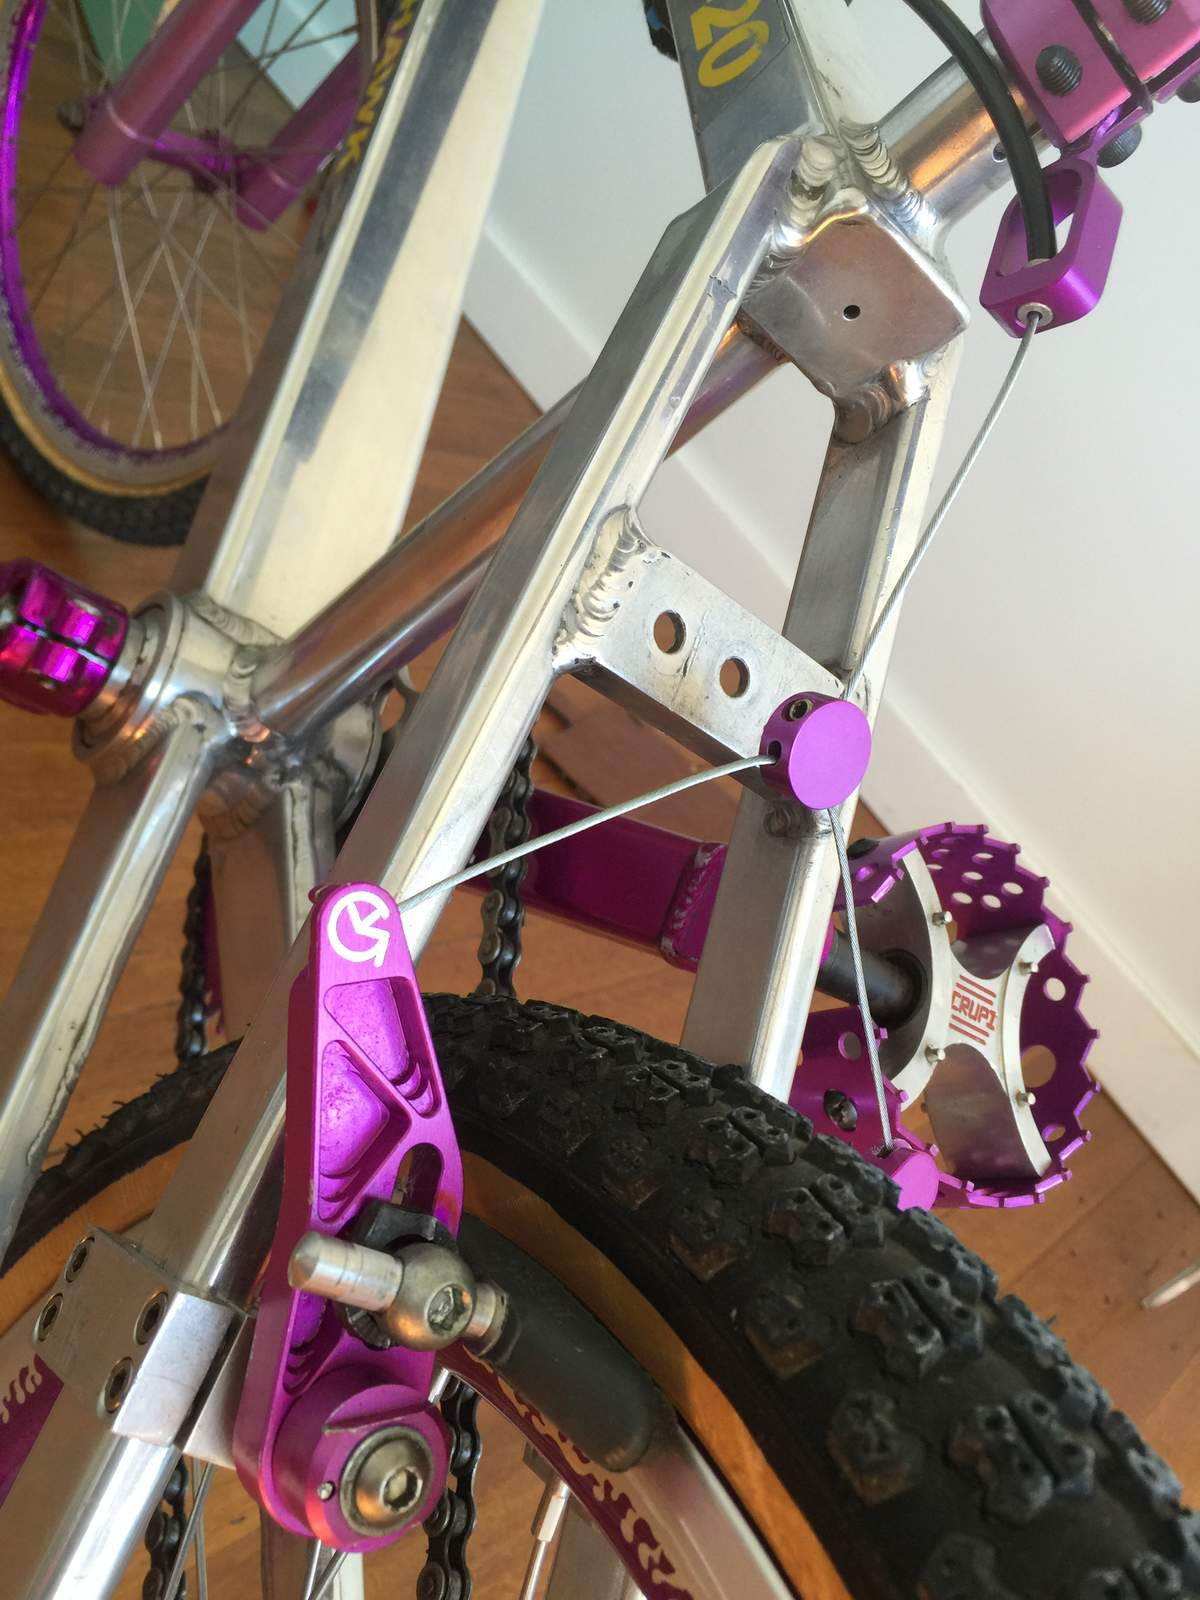 http://uploads.bmxmuseum.com/user-images/60004/image59a62cbed7.jpeg